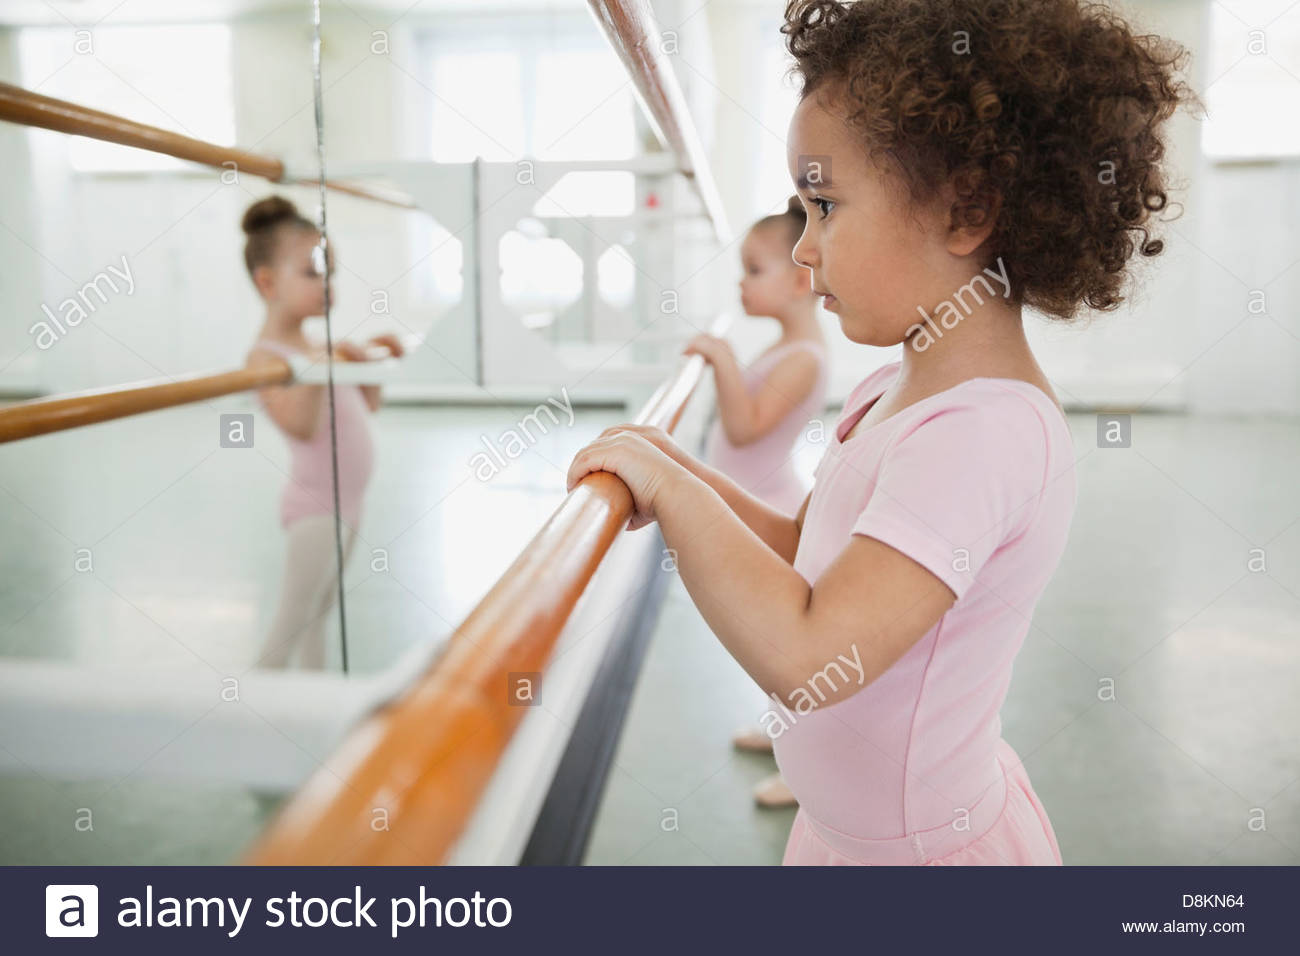 Girls practicing ballet in ballet studio - Stock Image